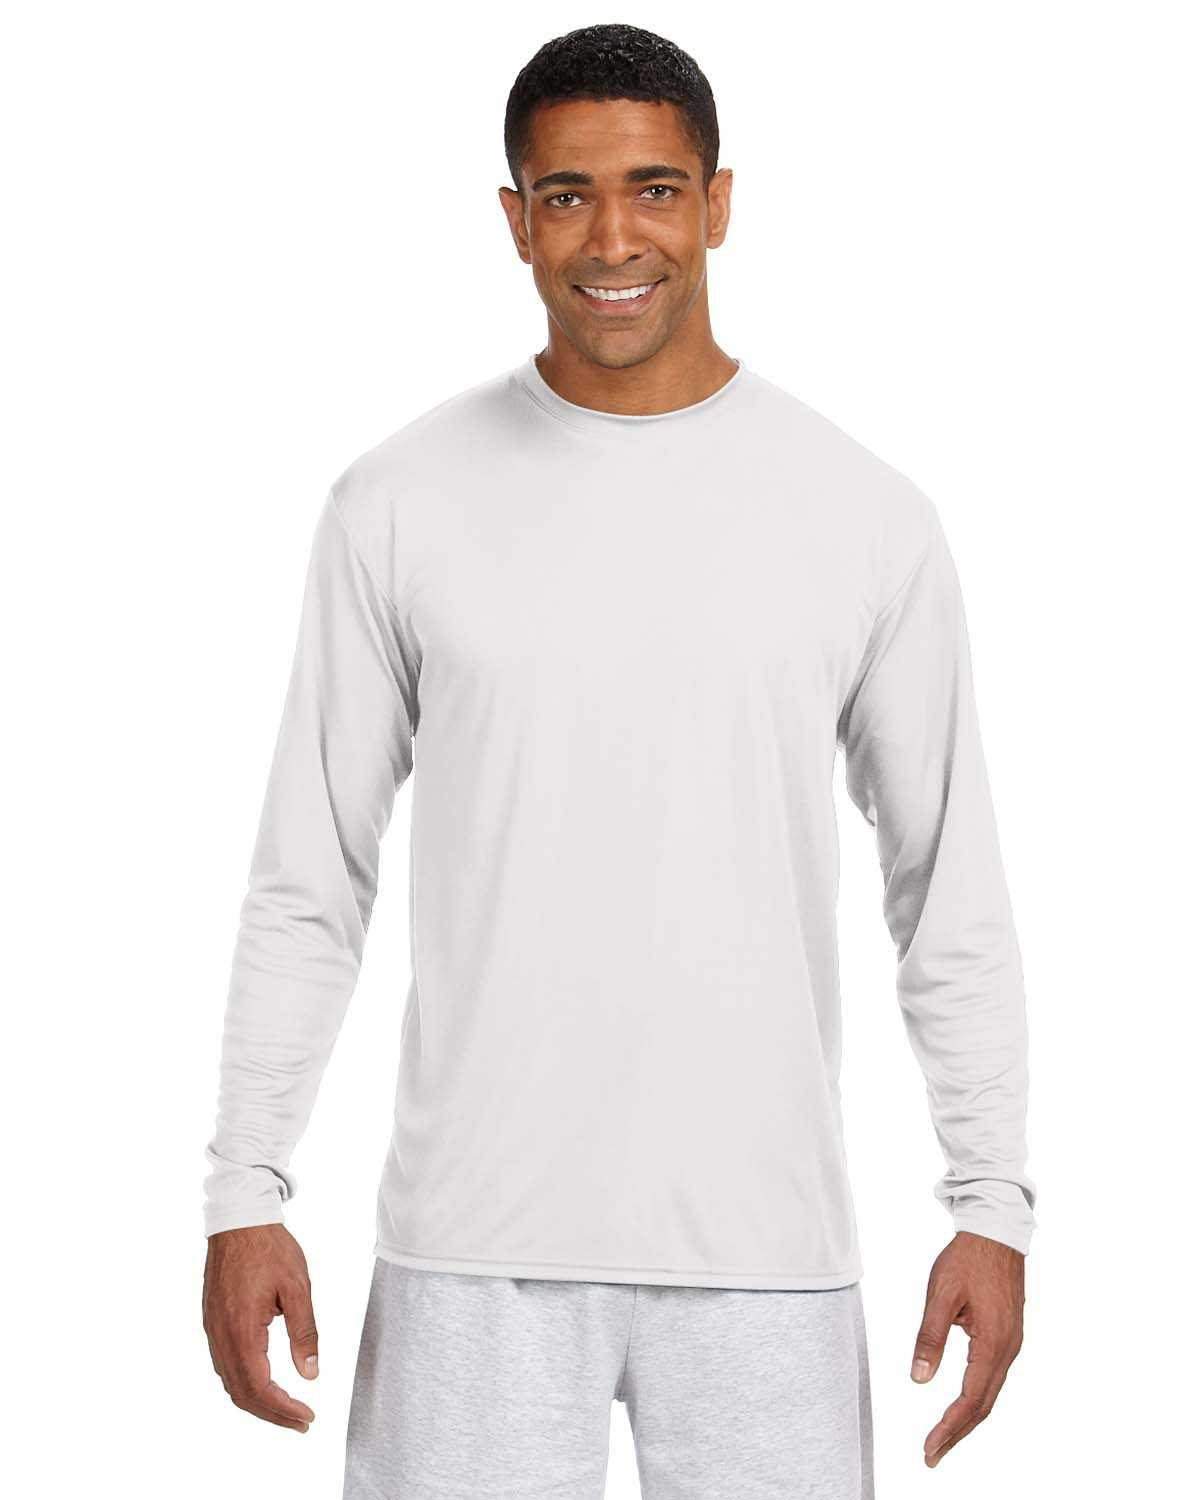 A4 N3165 Men S Long Sleeve Cooling Performance Crew